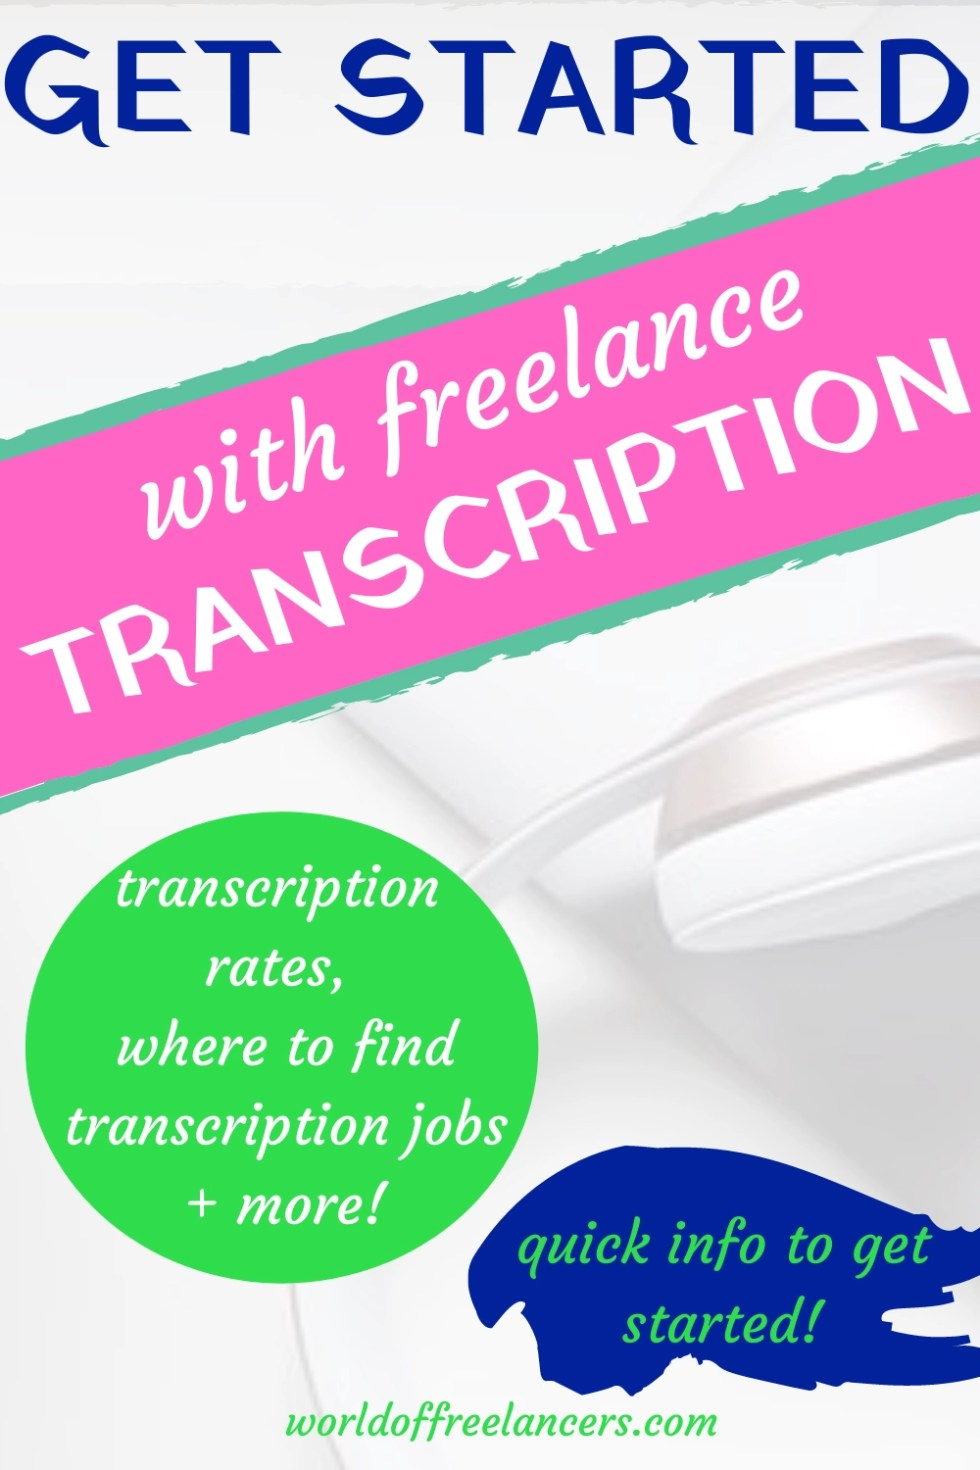 Get started with freelance transcription